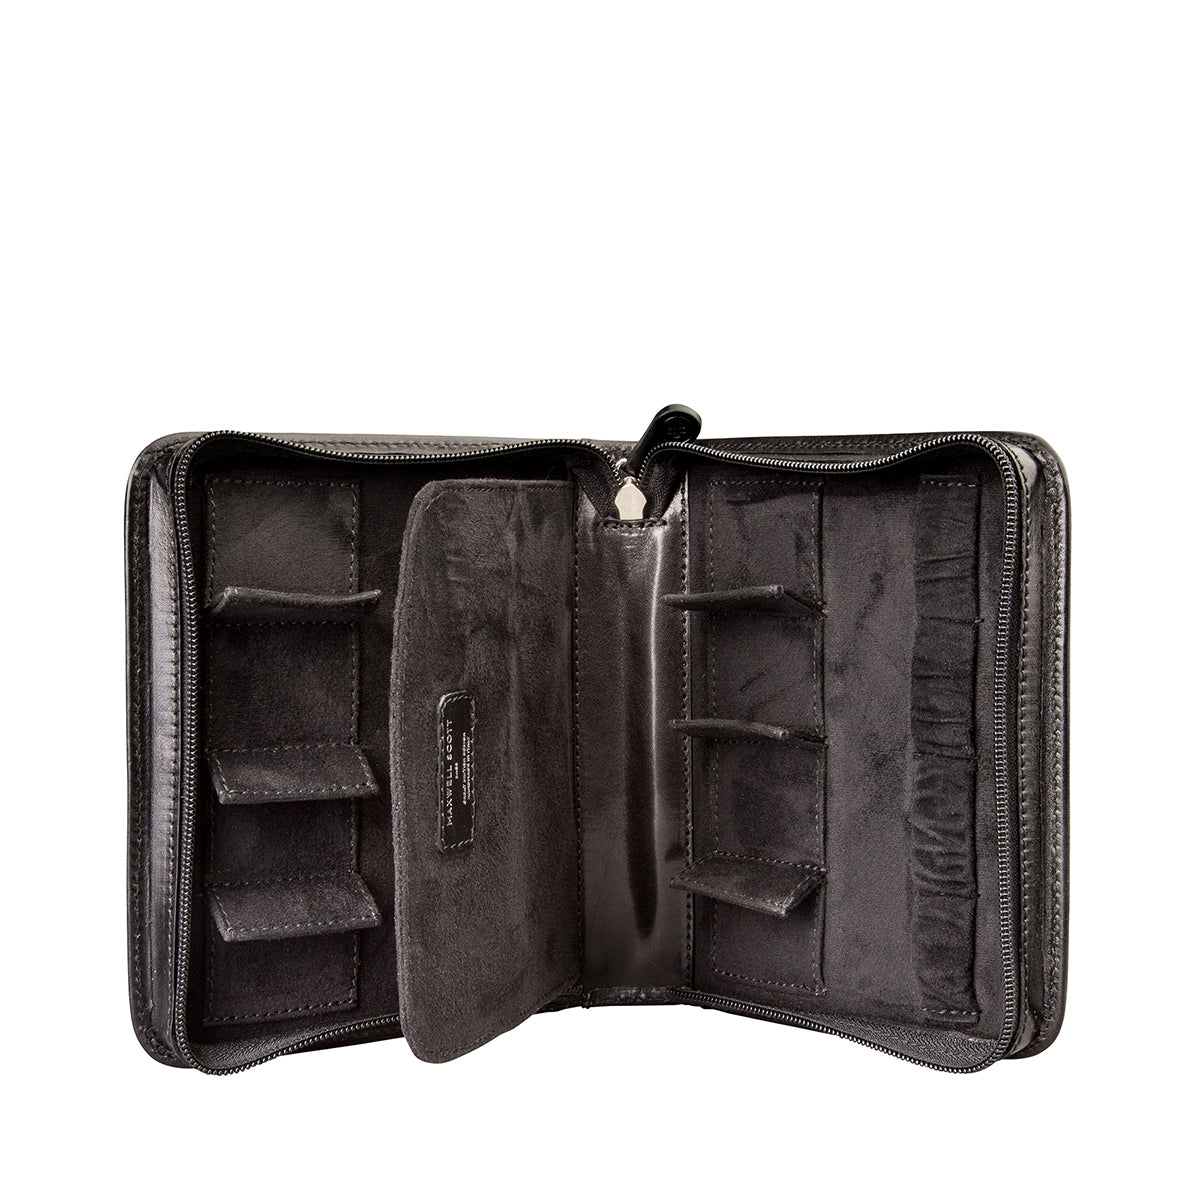 Image 1 of the 'Atella' Black Veg-Tanned Leather Watch Presentation Case